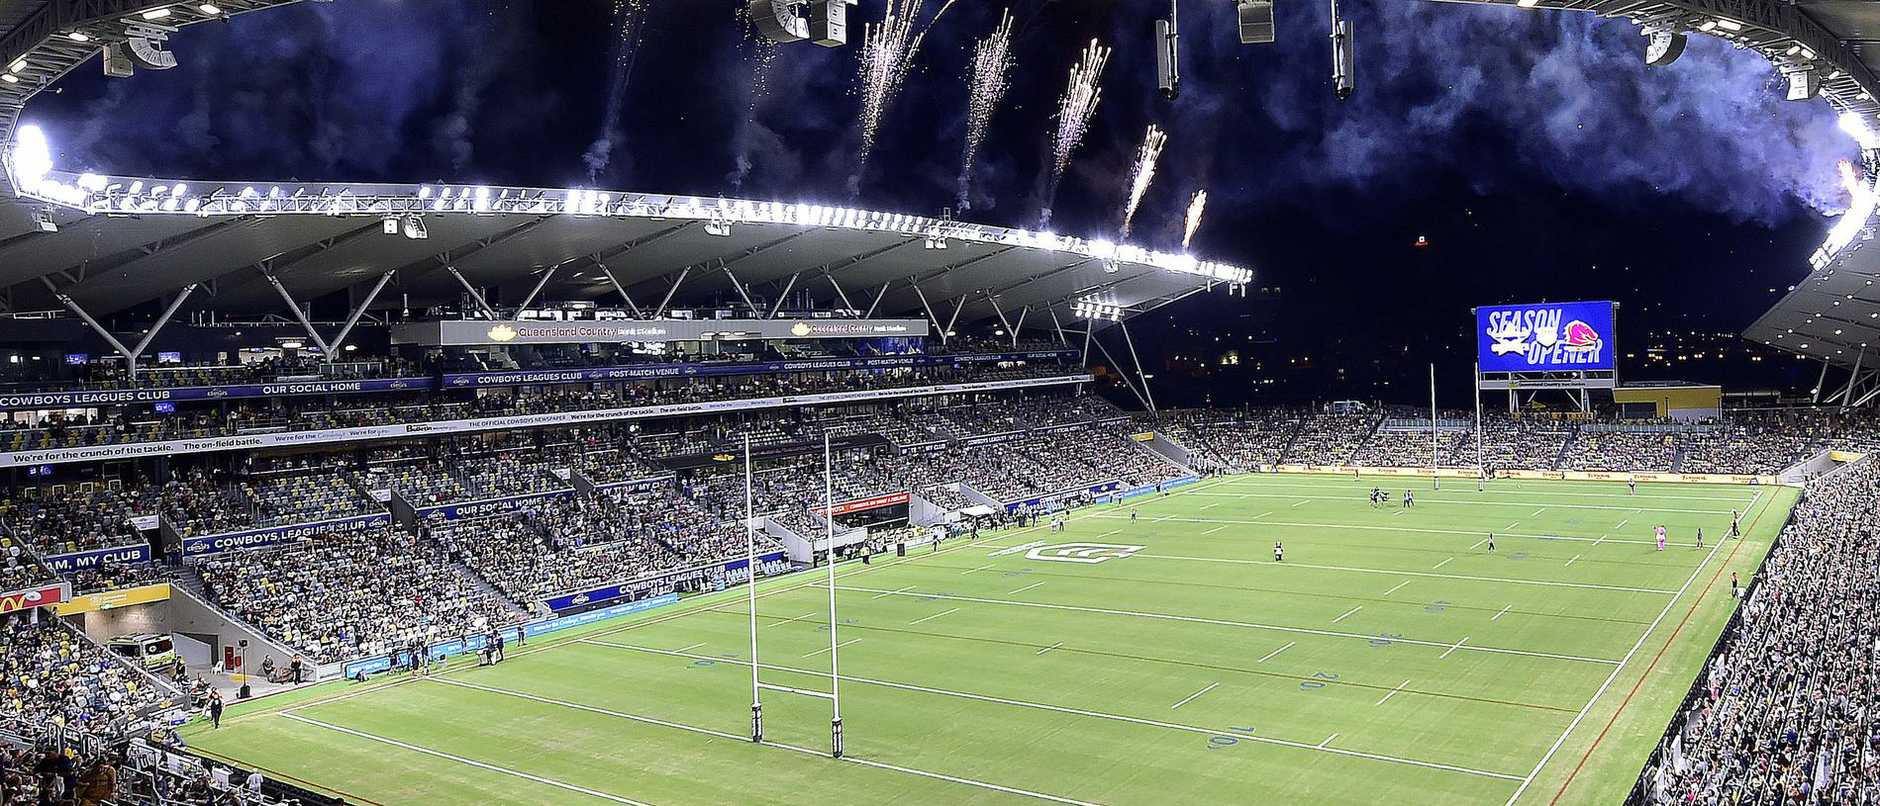 Annastacia Palaszczuk vehemently pushed for the season-opening Broncos vs Cowboys NRL game to proceed at the new north Queensland stadium in Townsville.